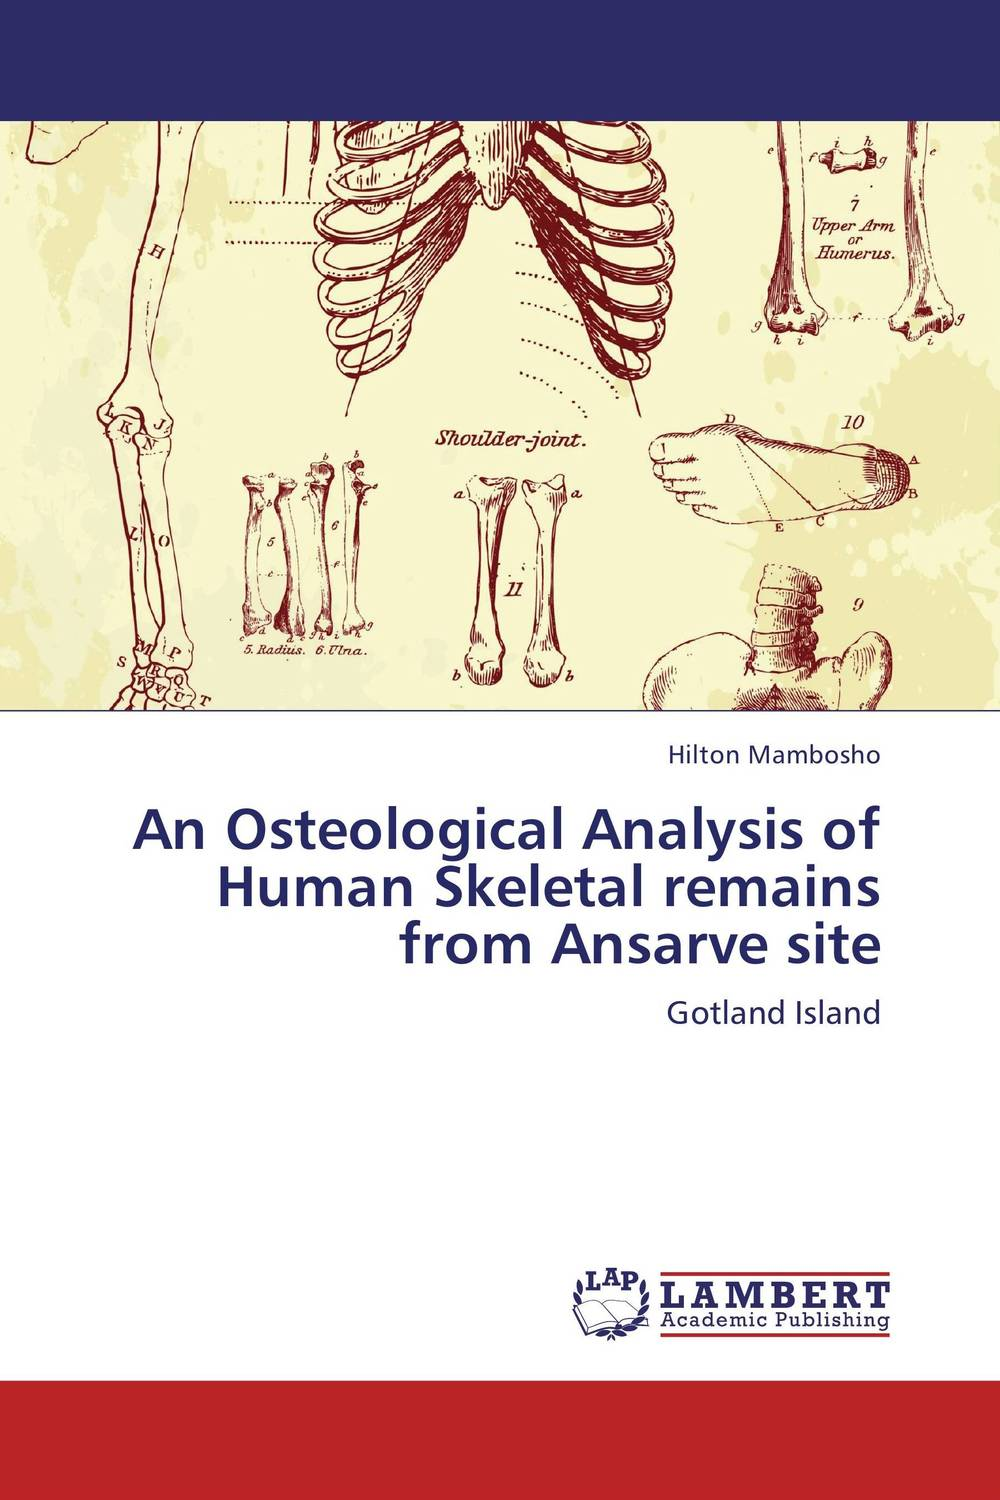 An Osteological Analysis of Human Skeletal remains from Ansarve site hilton mambosho an osteological analysis of human skeletal remains from ansarve site